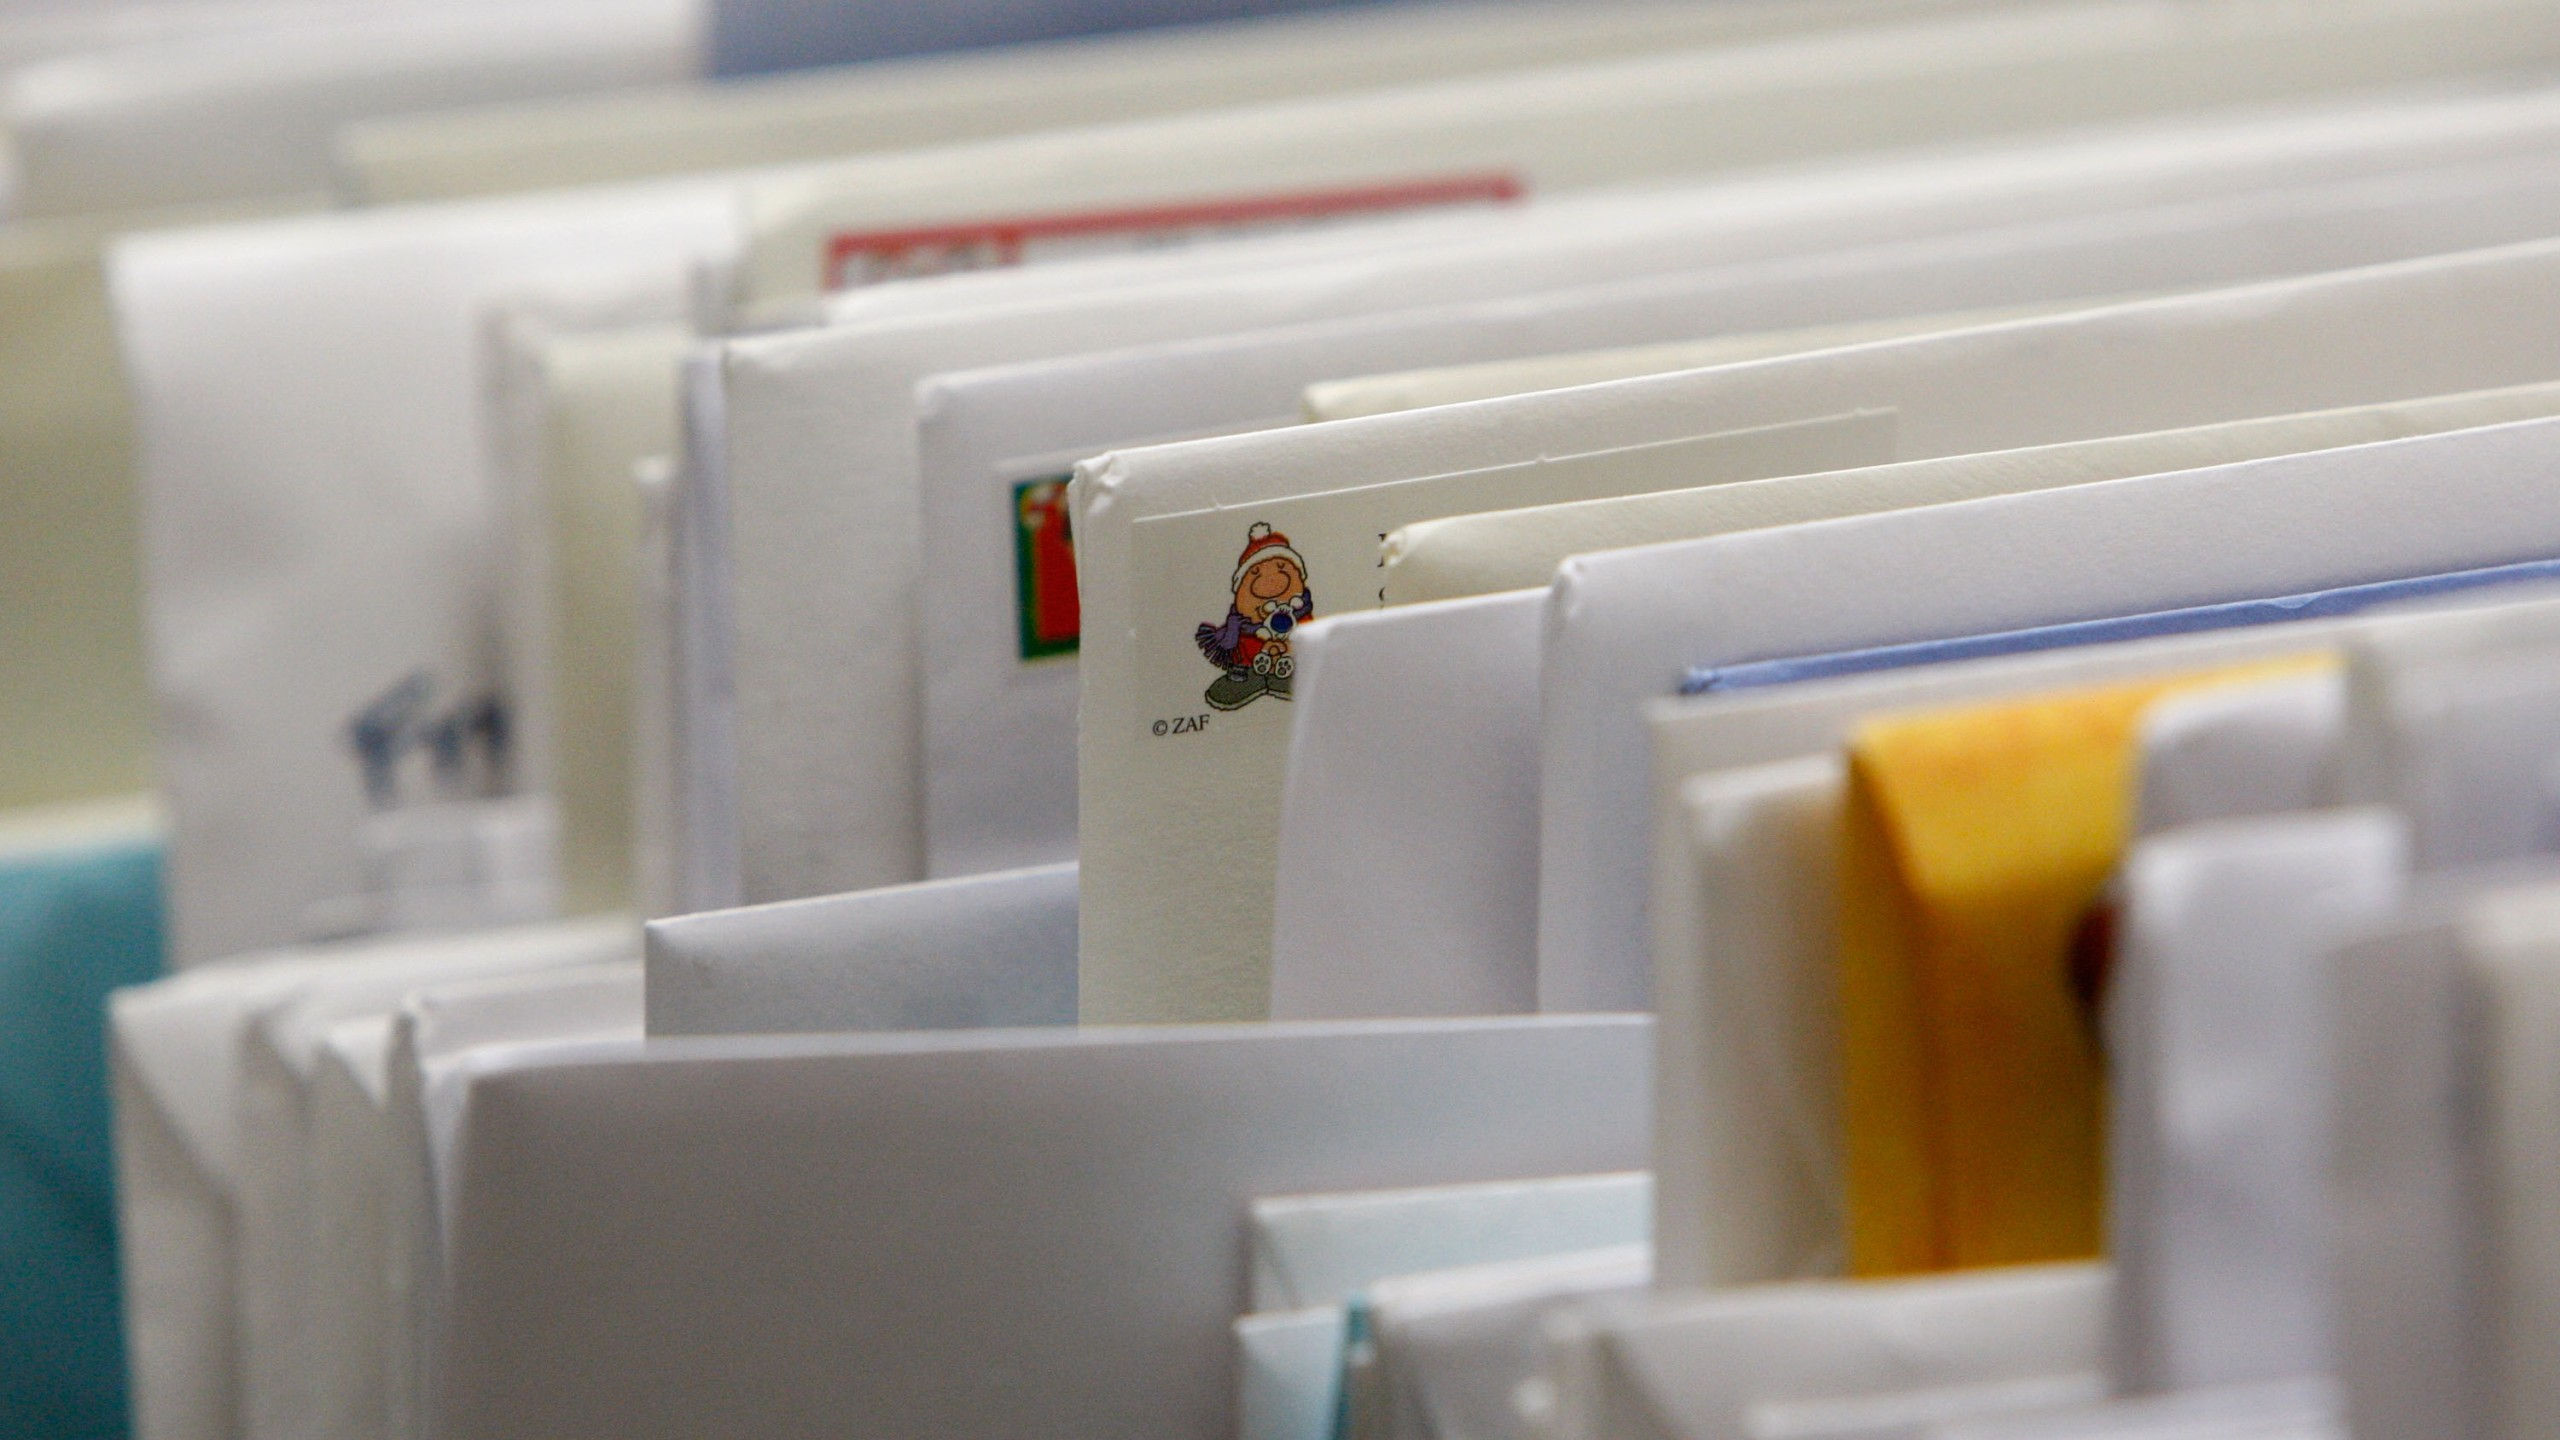 This file photo shows letters at the U.S. Post Office on Dec.17, 2007, in San Francisco. (Credit: Justin Sullivan/Getty Images)